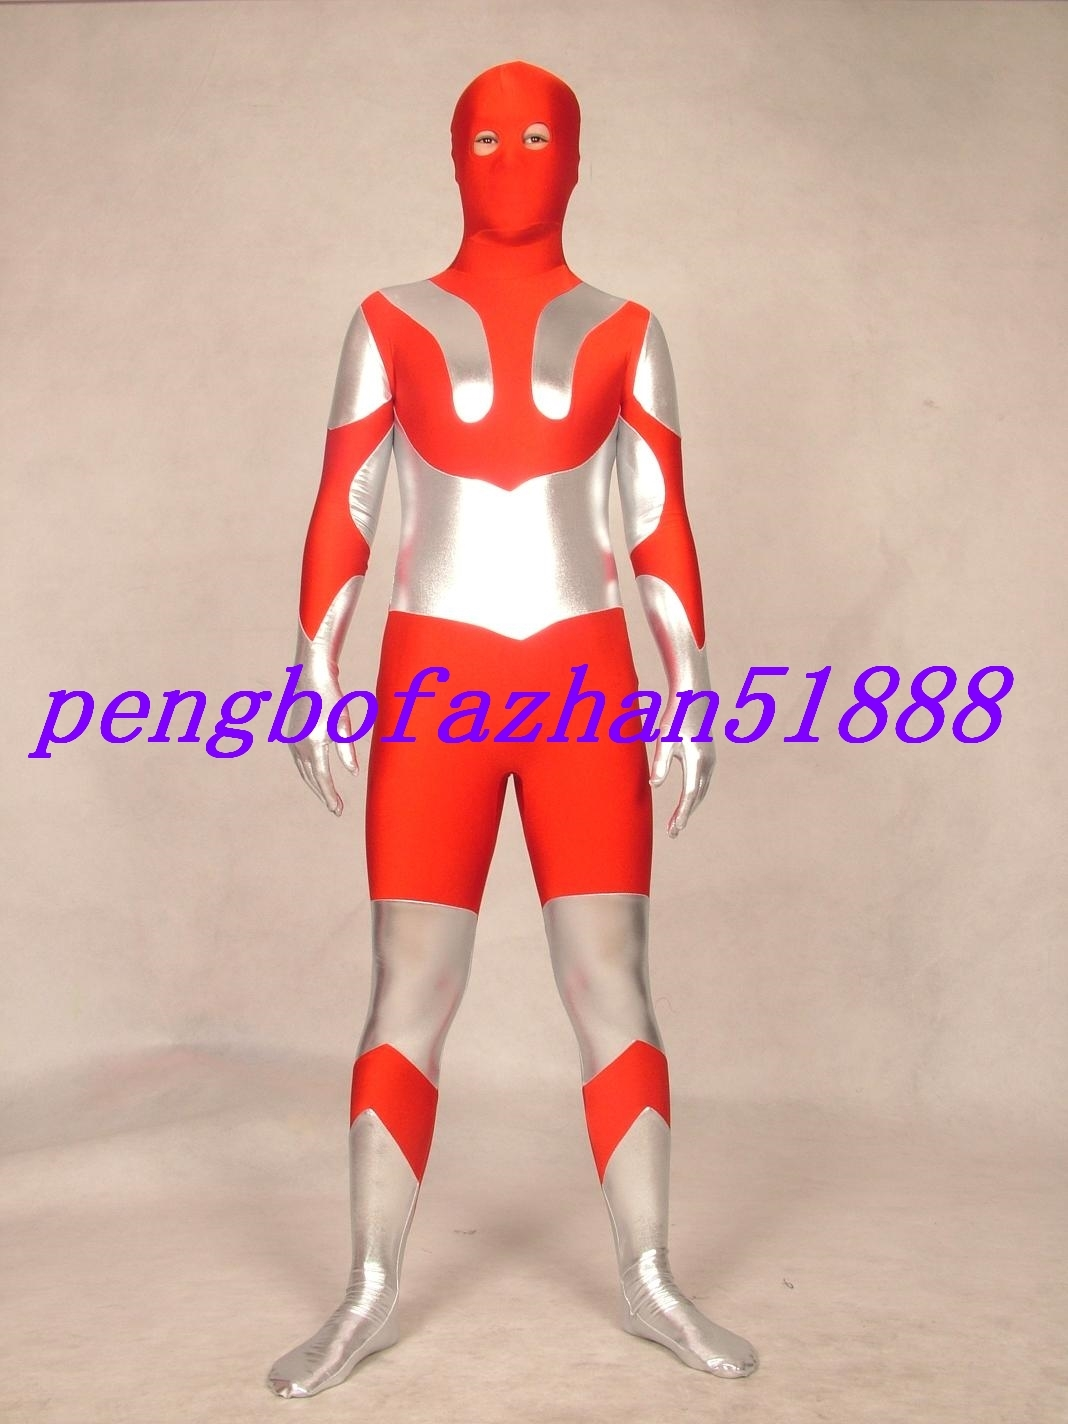 RED/SILVER LYCRA ULTRAMAN SUIT CATSUIT COSTUMES HALLOWEEN COSPLAY SUIT S207